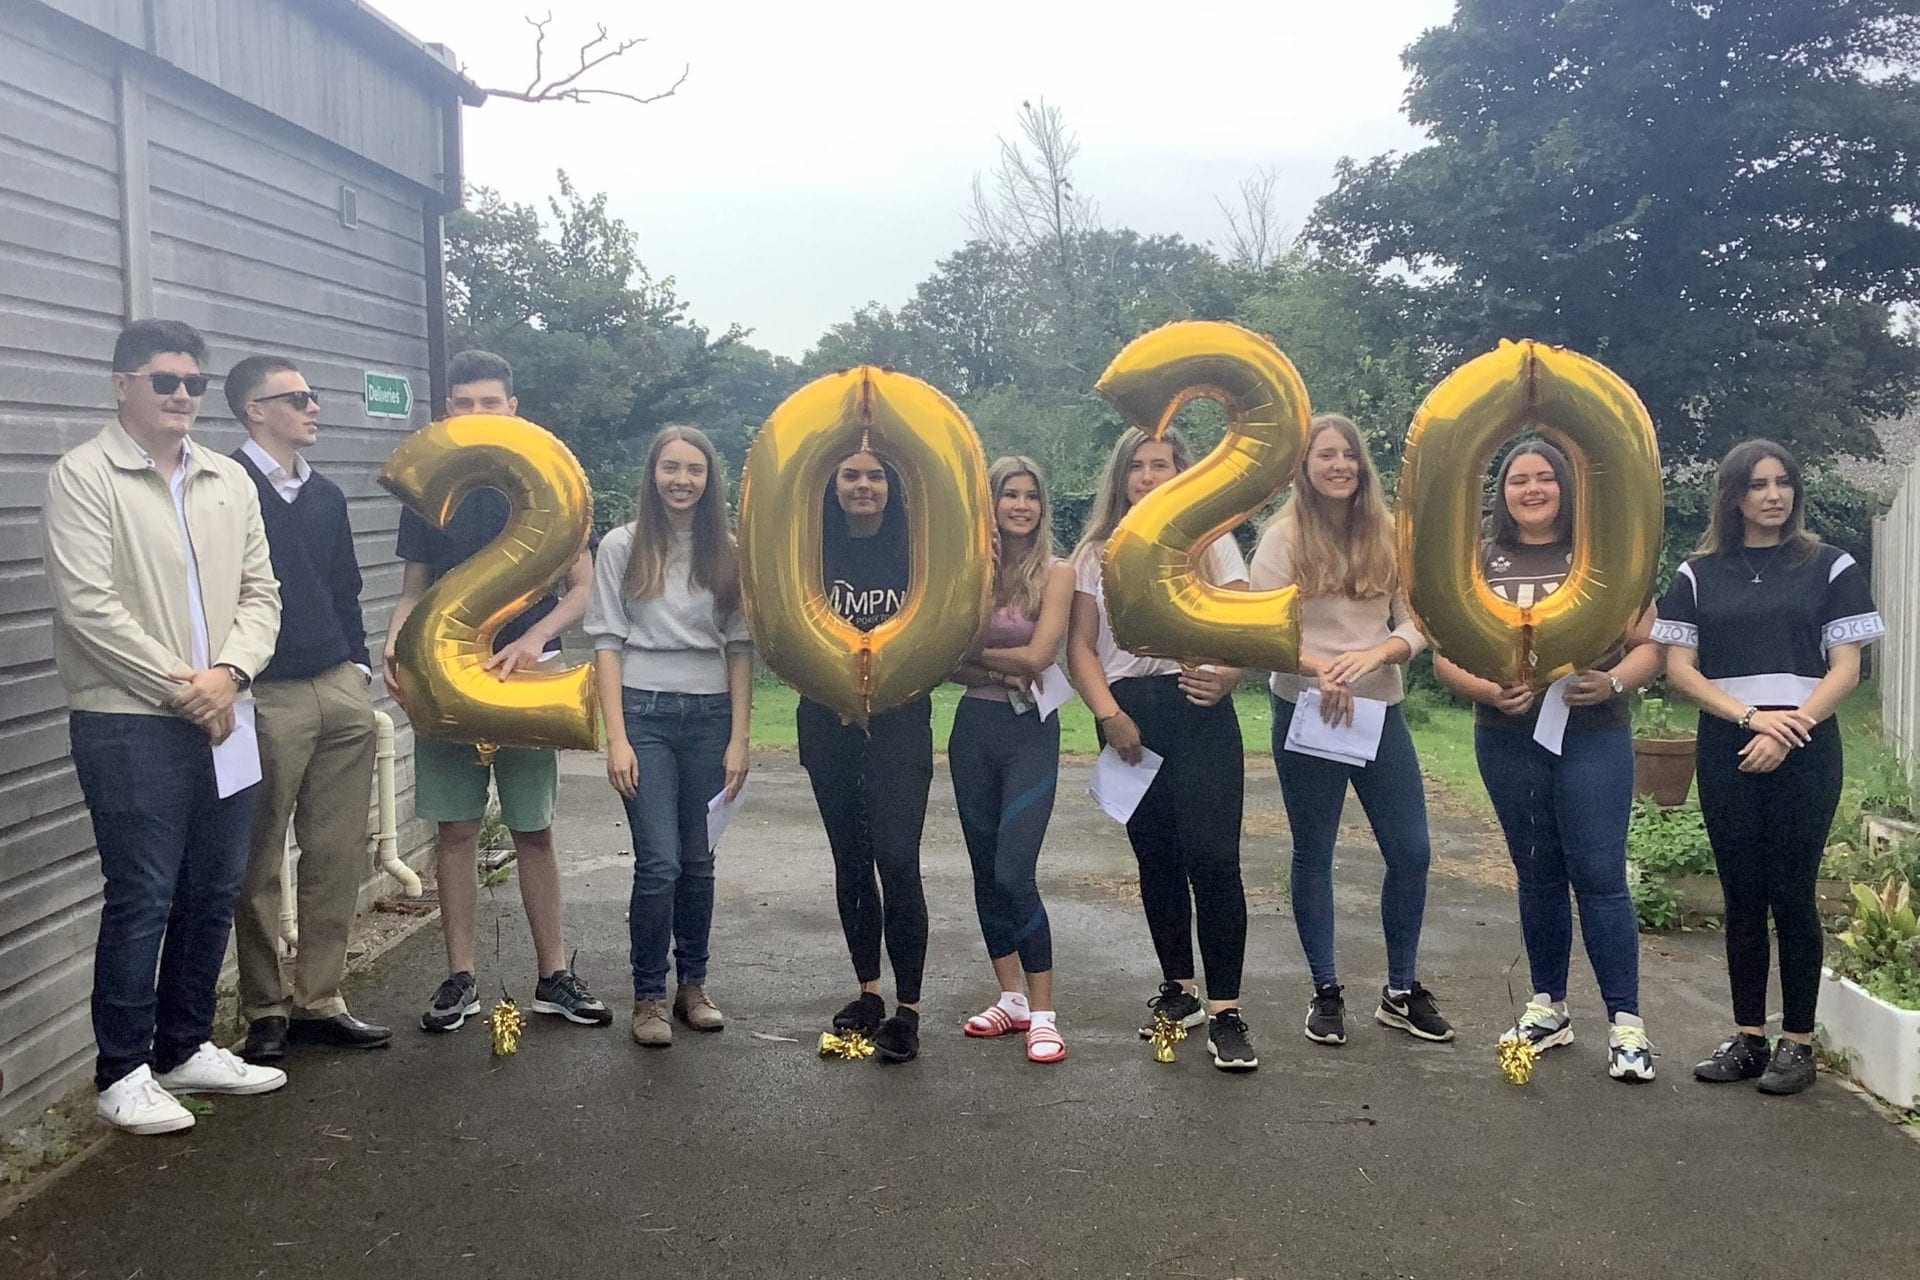 Teenage boys and girls holding up gold helium balloon numbers 2020